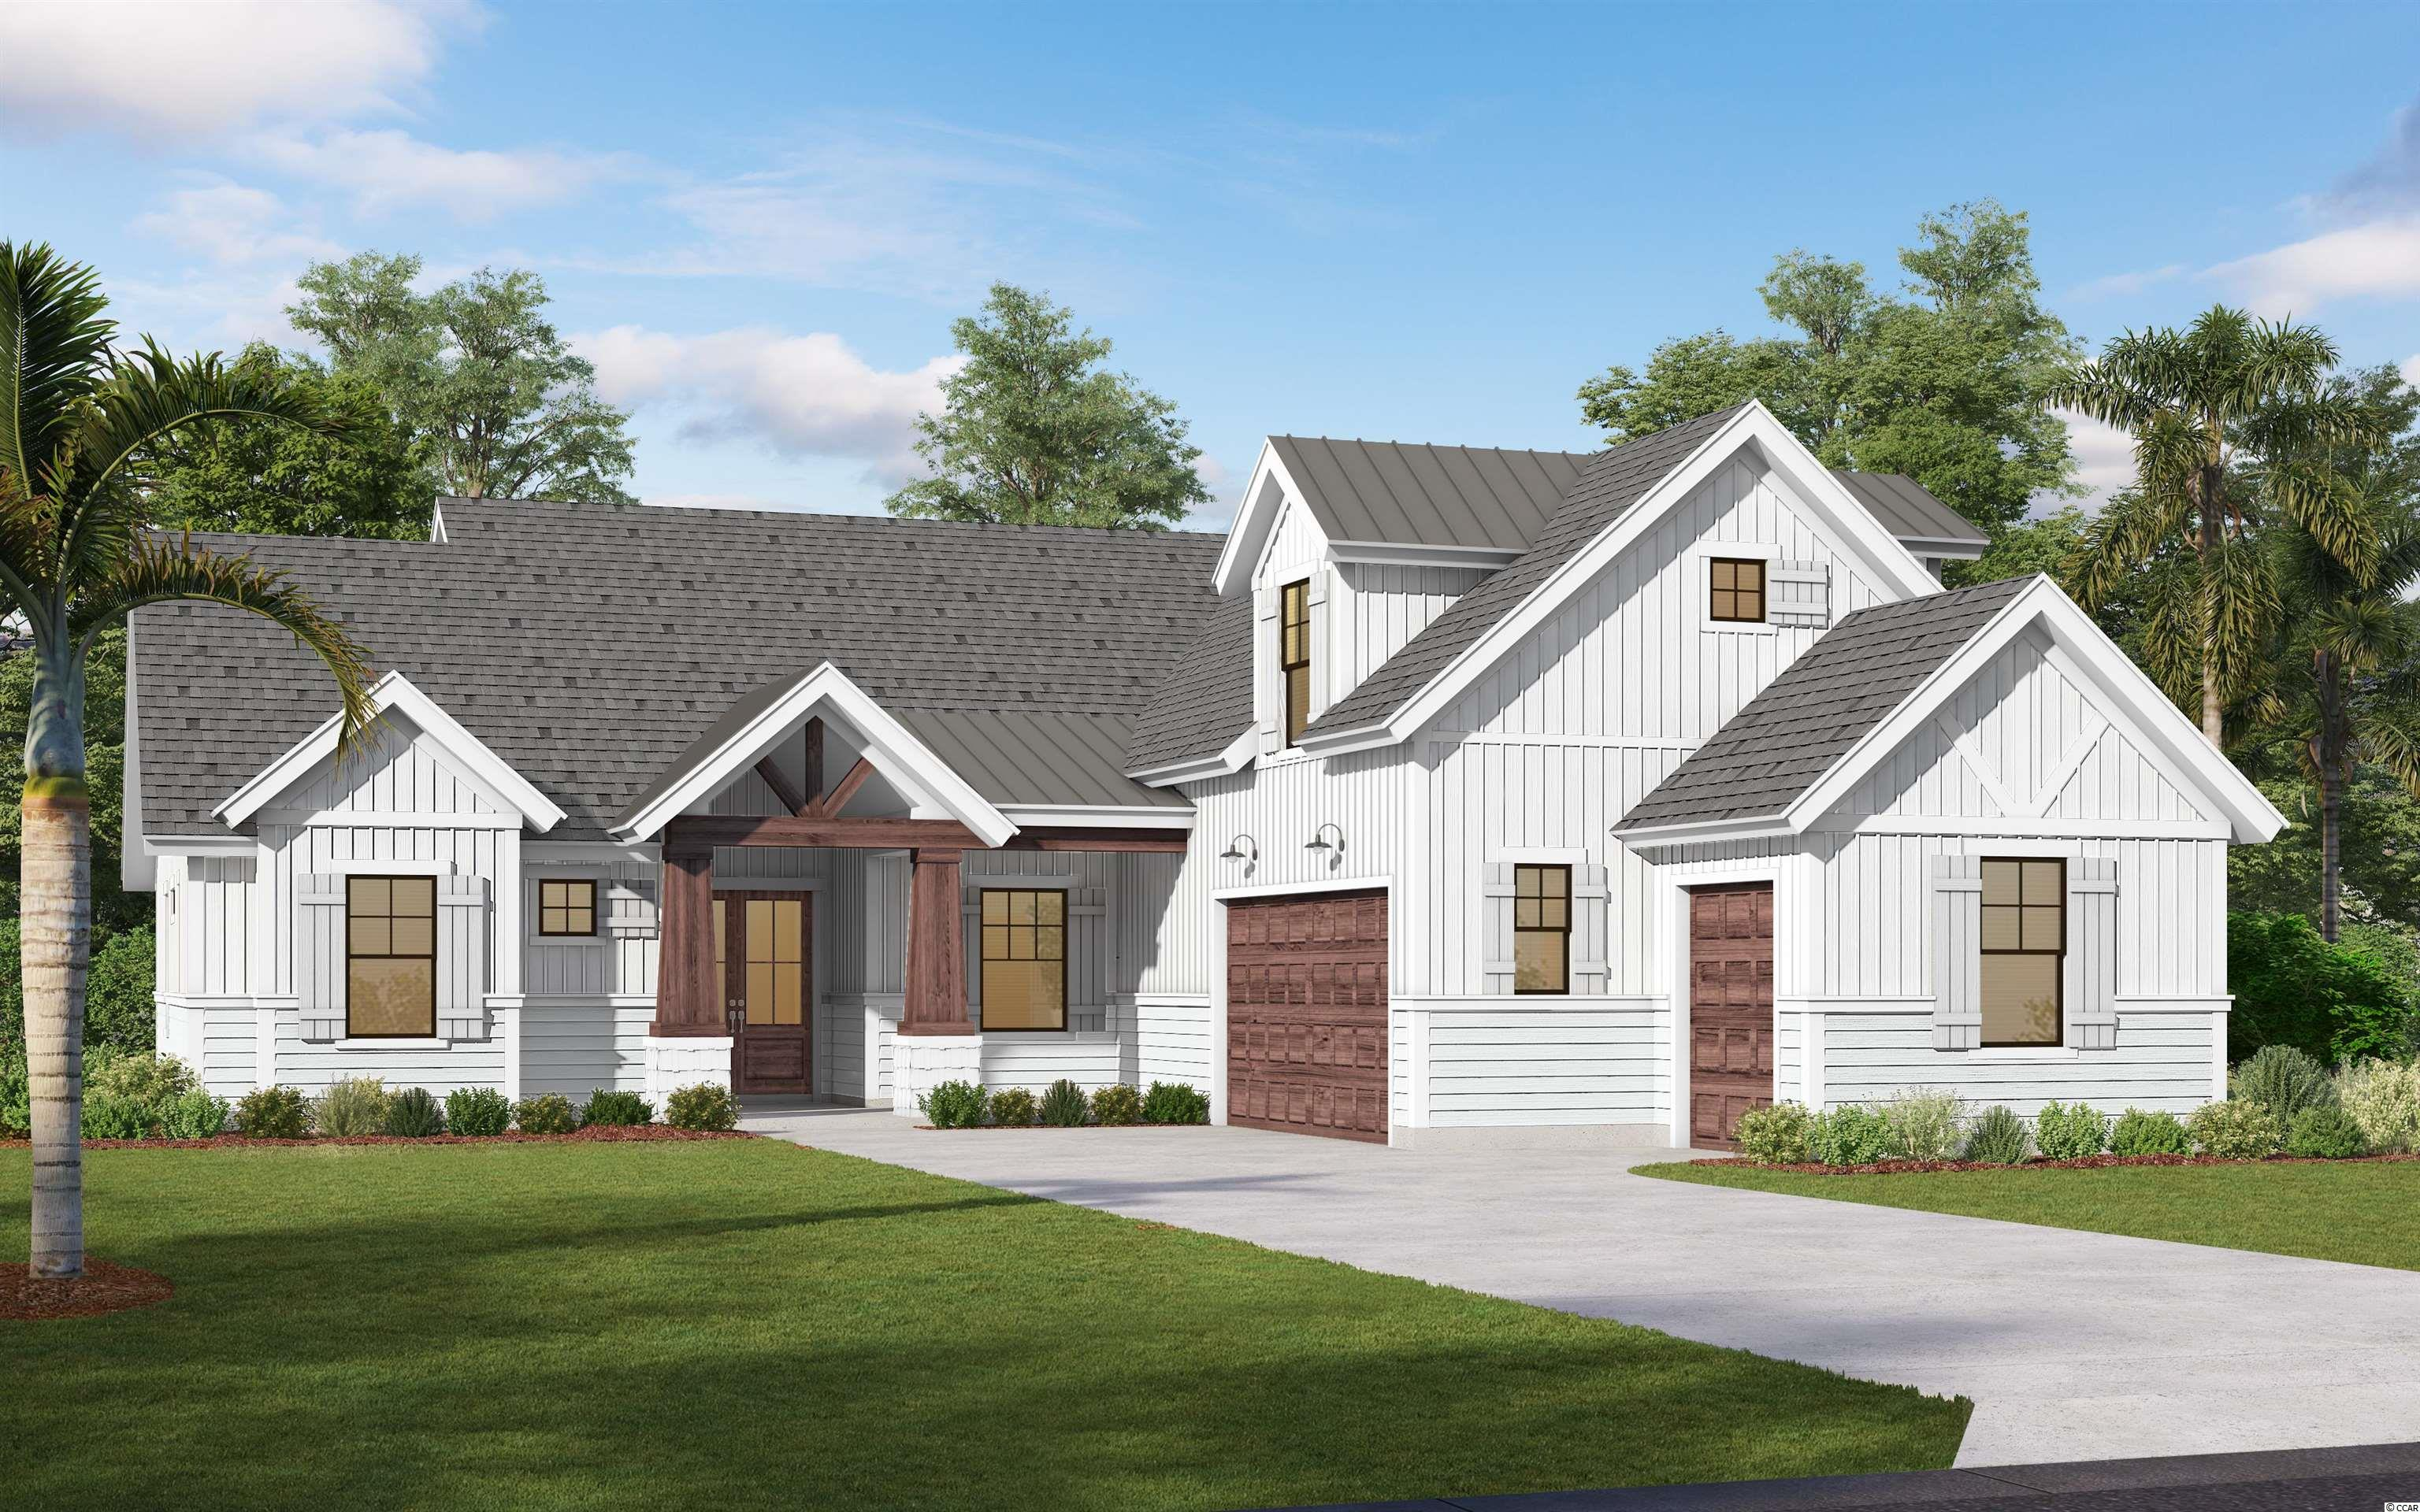 "Welcome to BEAUMONT PARK in Pawleys Island!  New development just minutes from the beach, restaurants, grocery stores and more. One acre home site with NO HOA. Custom builder. This  Carolina  home  plan is to be built with approx. 2007 Heated Square Feet, with an ""optional bonus room"" to make the total heated sqft to 2286.  Contemporary craftsman style 3 bedroom, 2 bath home with Hardie plank, shake, board & batten siding along with brick accenting exterior. An ""optional "" Bonus Room could be 4th bedroom. Bonus room is not included in listed price. This is an additional cost.  Two car attached garage.   A beautiful covered porch and  a patio to enjoy your morning coffee or afternoon cocktail with friends. This home has many amazing features such as 9 foot and vaulted ceilings on first floor, 8 ft ceilings on second floor, rounded sheet rock corners, crown molding in main living areas.  An open floor plan with a large great room, dining and breakfast nook. The  Master suite has tray ceilings and master bath boosts double vanities, garden tub,  tile shower and his/her walk in closets. Beautiful interior with crown molding, tile floors throughout main living area, granite counter tops in kitchen and master bath, custom cabinets. The main living areas have tile flooring or hardwood flooring and bedrooms are carpet. The additional two bedrooms are a split bedroom floor plan and  guest bathroom has cultured marble counter tops and tile flooring. Come see this beautiful home and start living the Pawleys Island lifestyle! Photos may show features NOT included in base price. Optional upgrades available upon request. .Disclaimer: Storm water plan may change to gain use of undisturbed area at the back of each lot. A retention pond will run along the back of property near property line. There will still be plenty of space for a great backyard. Please inquire for details, price is subject to change. Pictures are of Beaumont Park model home and not the actual home. Options, features and upgrades will vary as built."